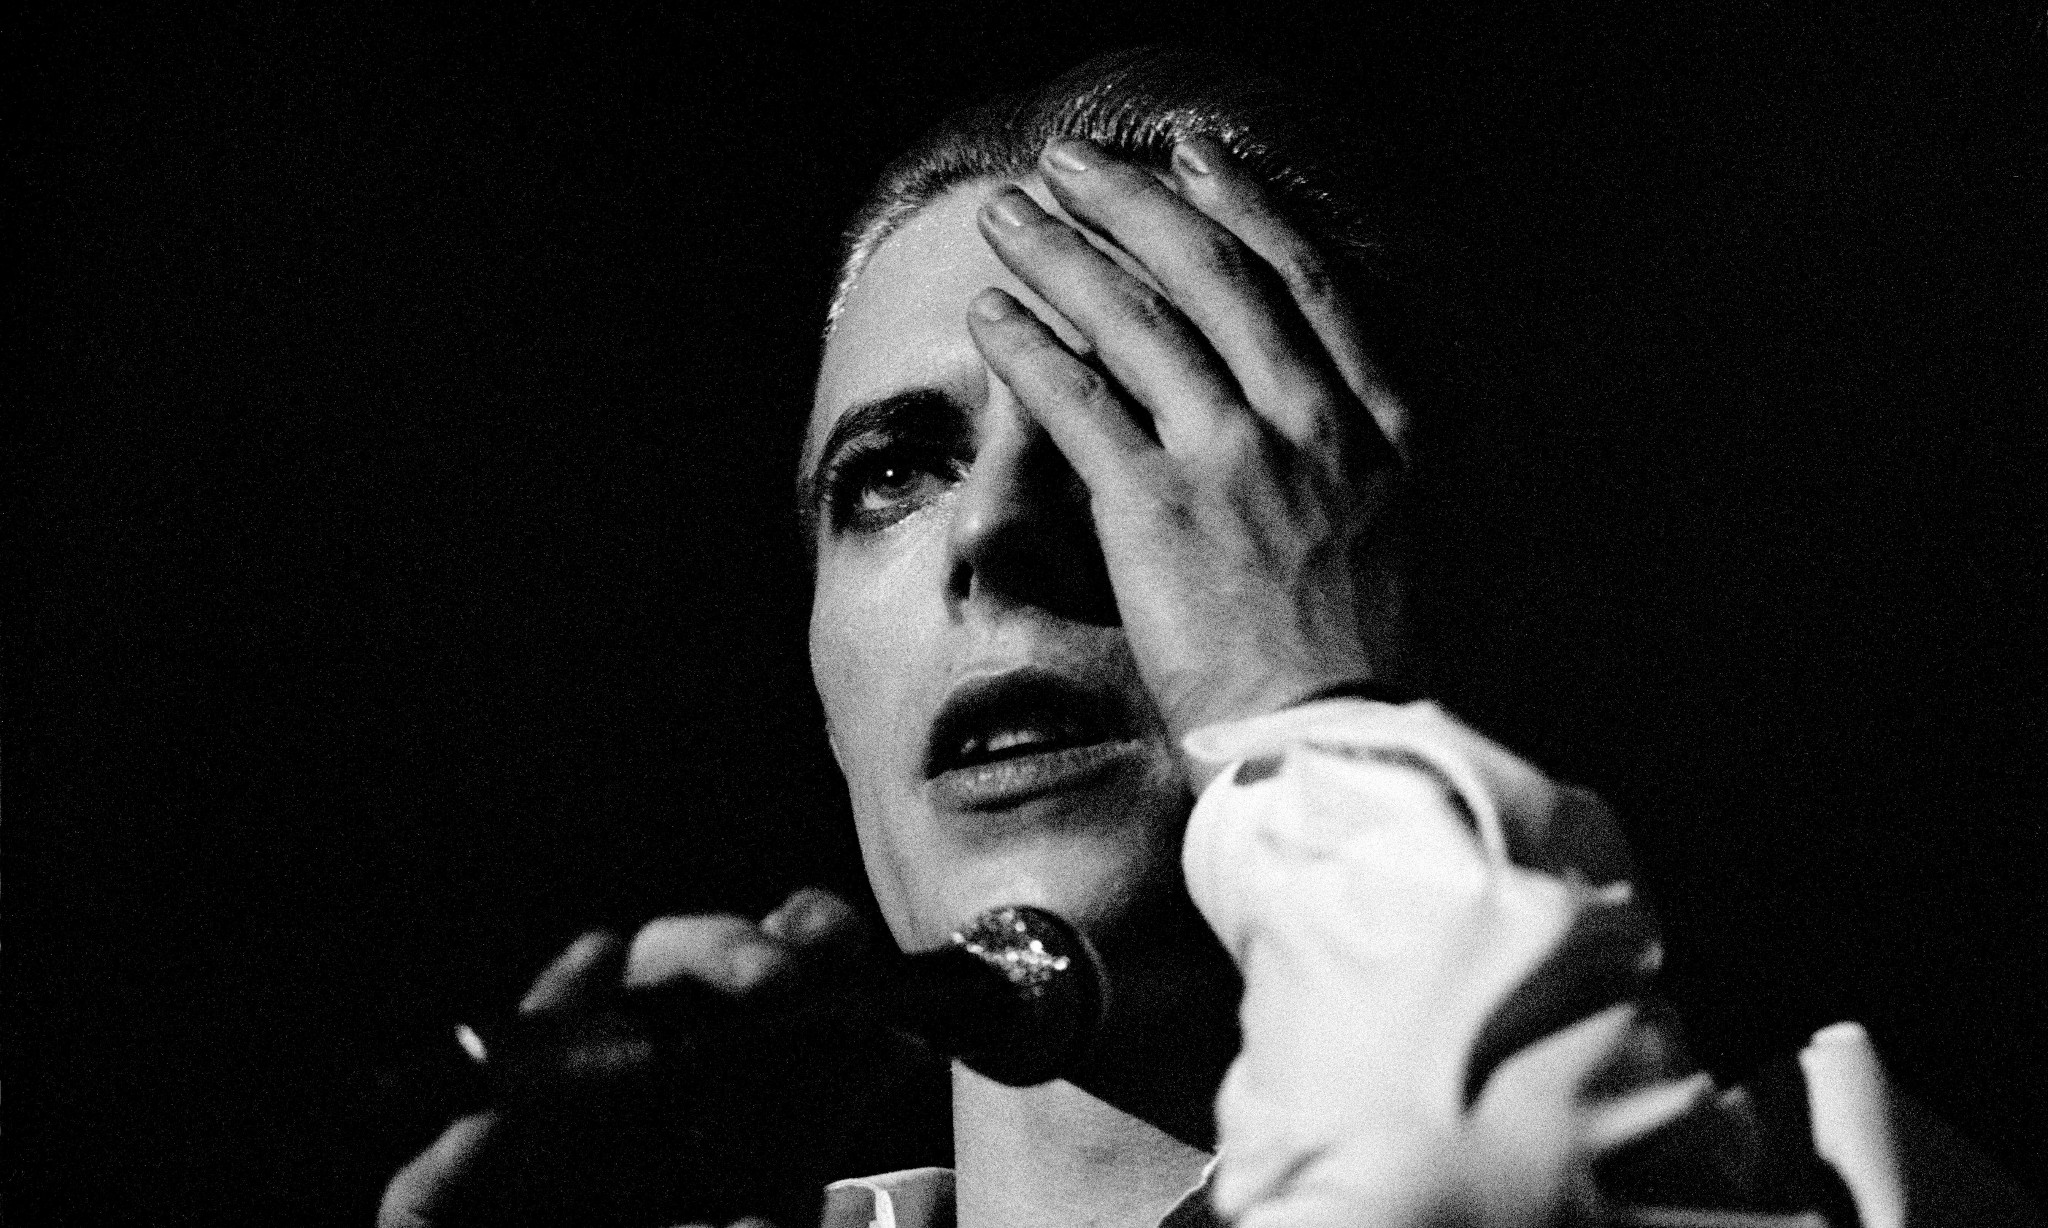 My David Bowie, alive for ever